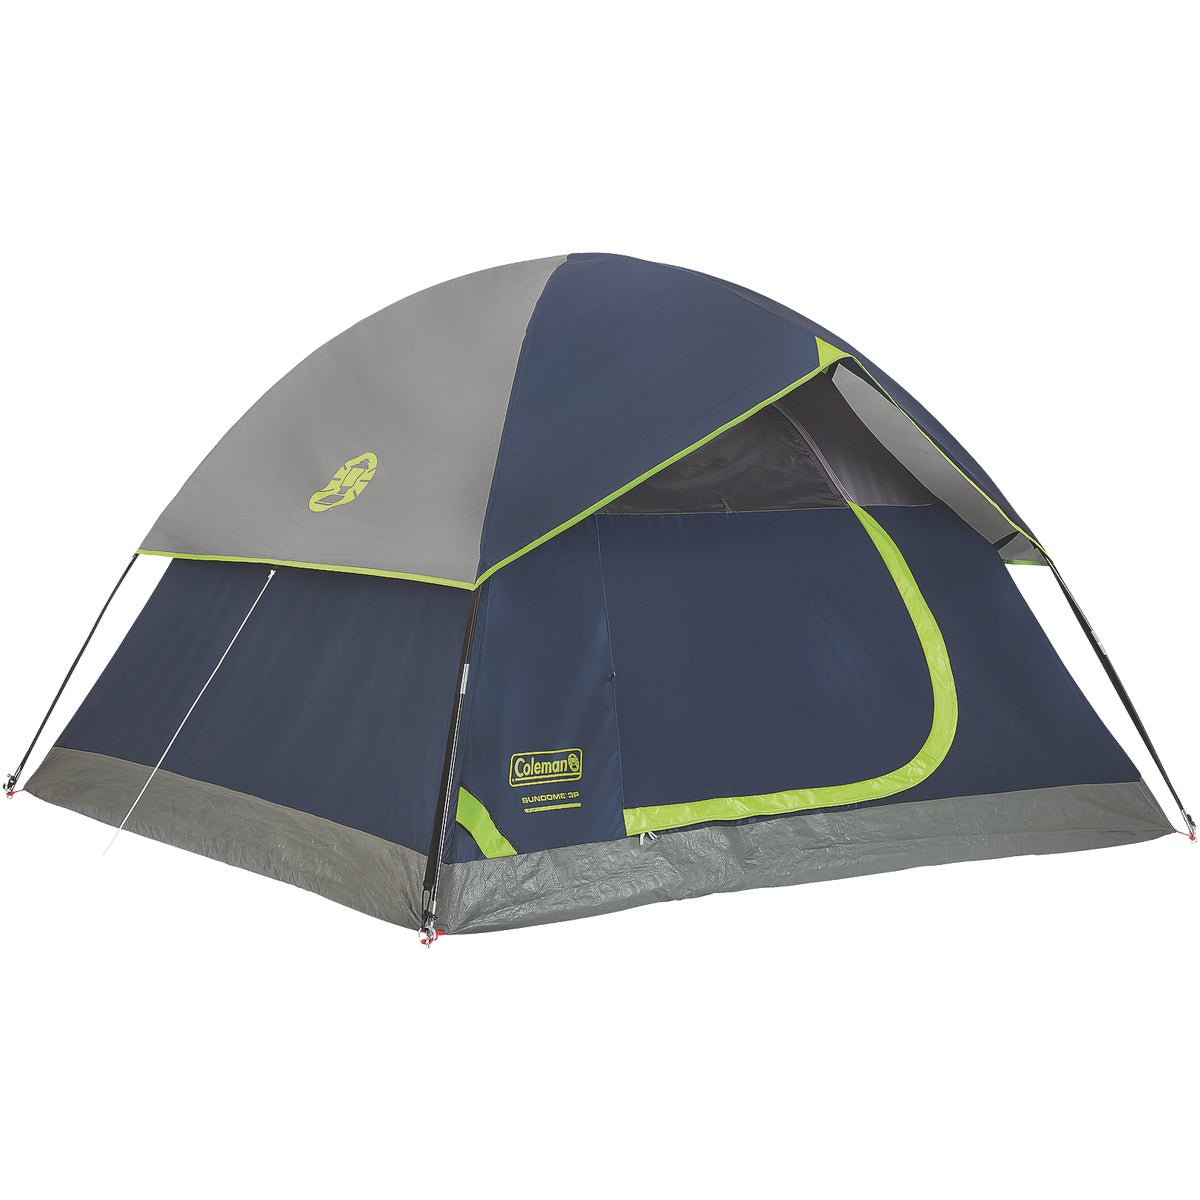 7X7 DOME TENT